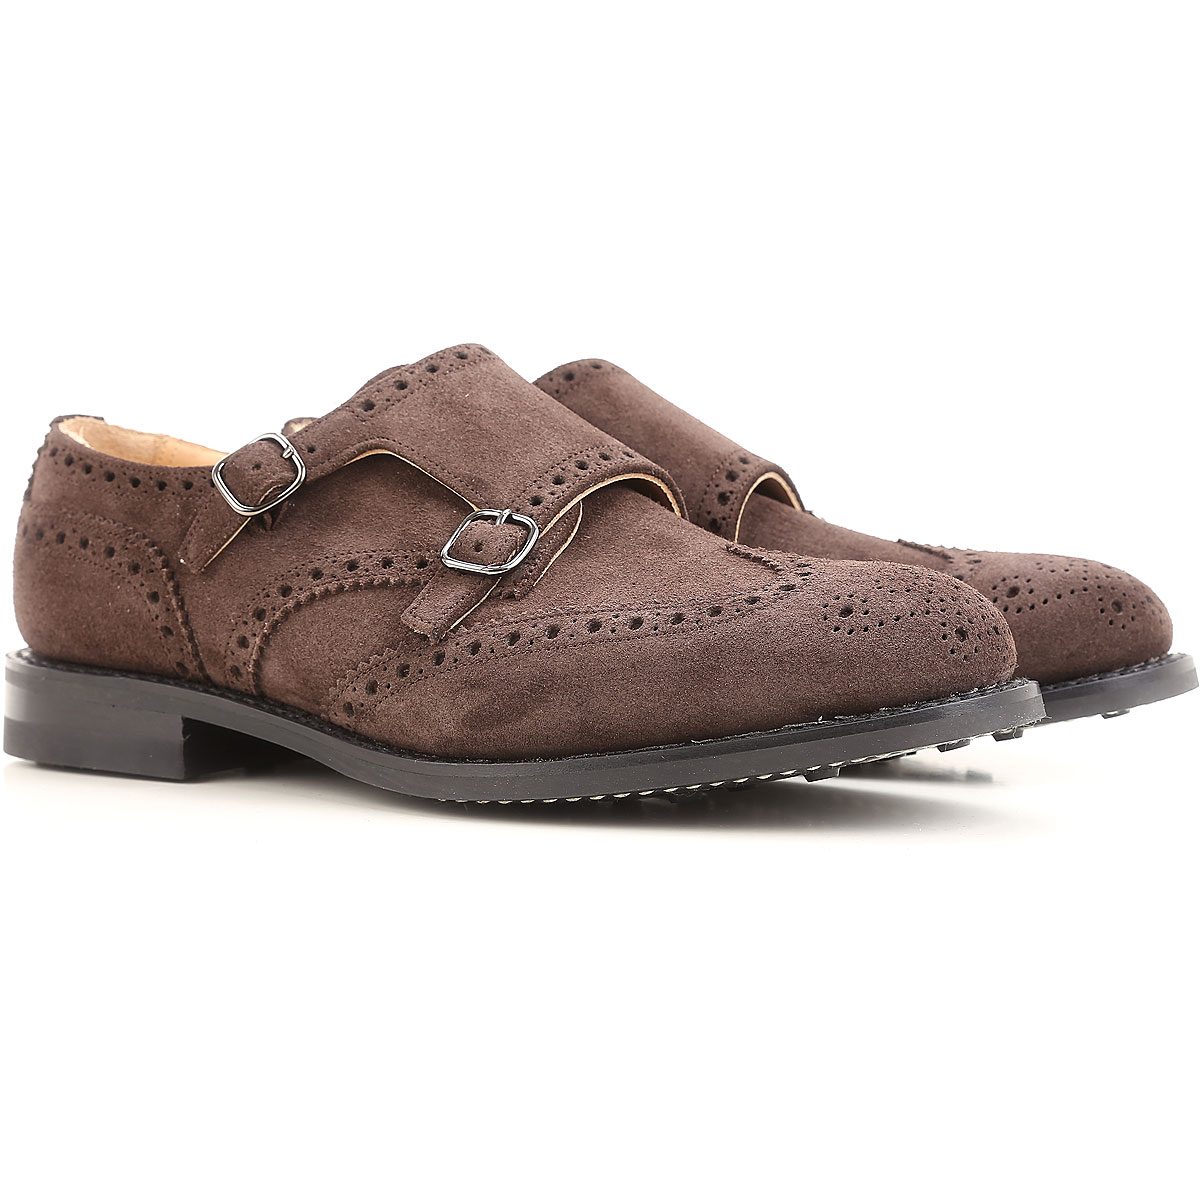 Image of Church's Brogue Shoes, Dark Ebony, Suede leather, 2017, 10 11 7 8.5 9